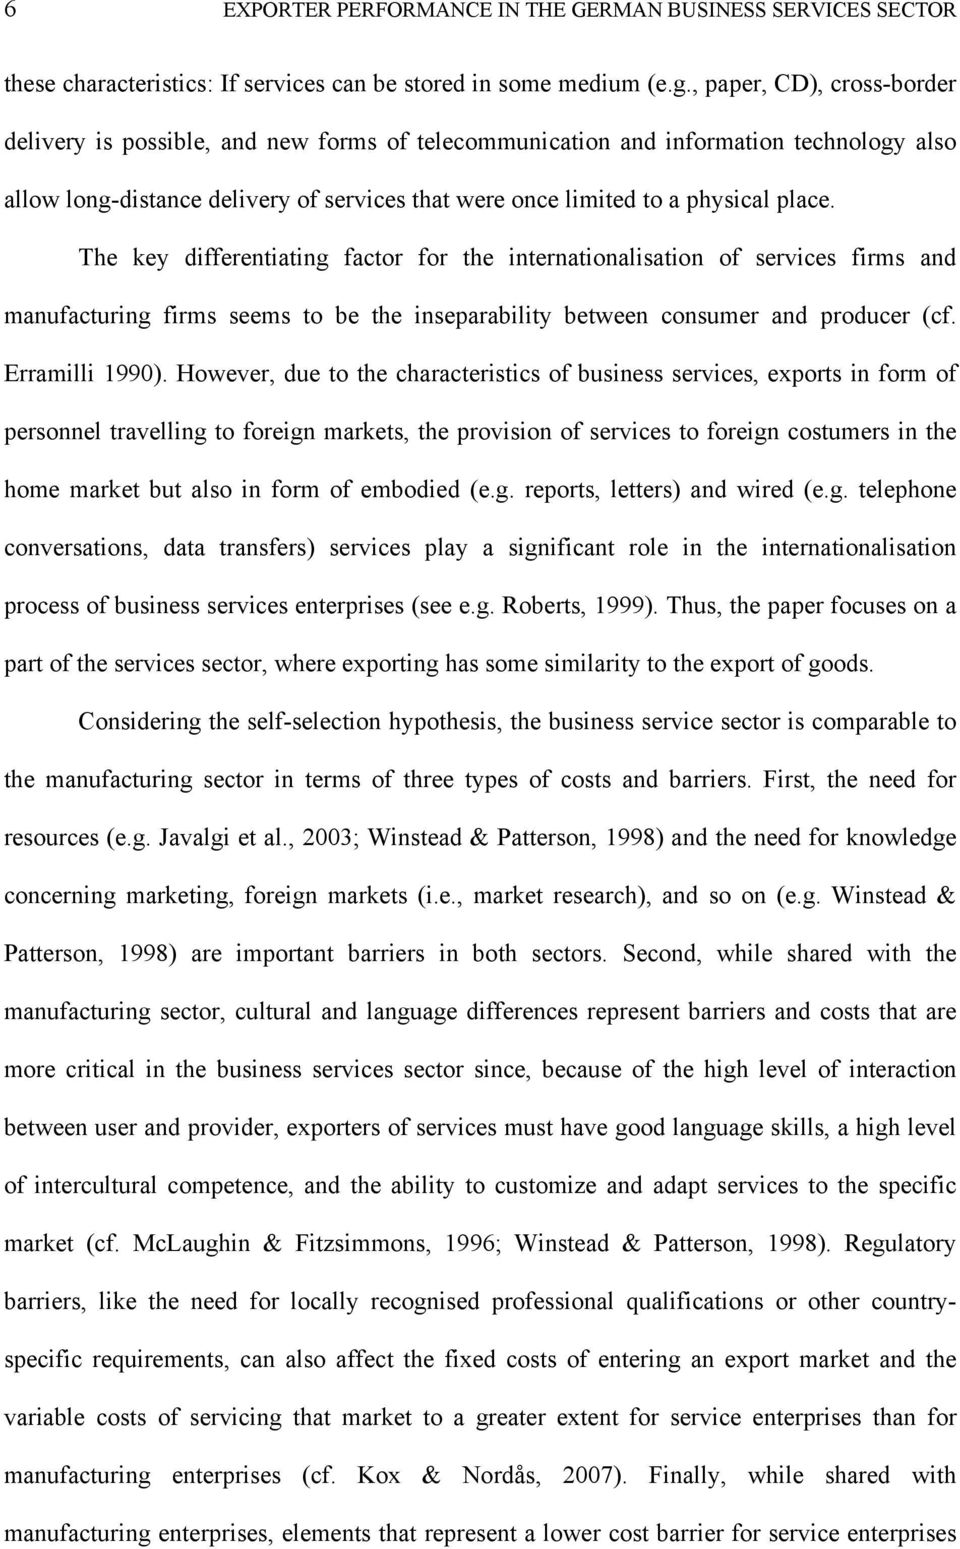 The key differentiating factor for the internationalisation of services firms and manufacturing firms seems to be the inseparability between consumer and producer (cf. Erramilli 1990).